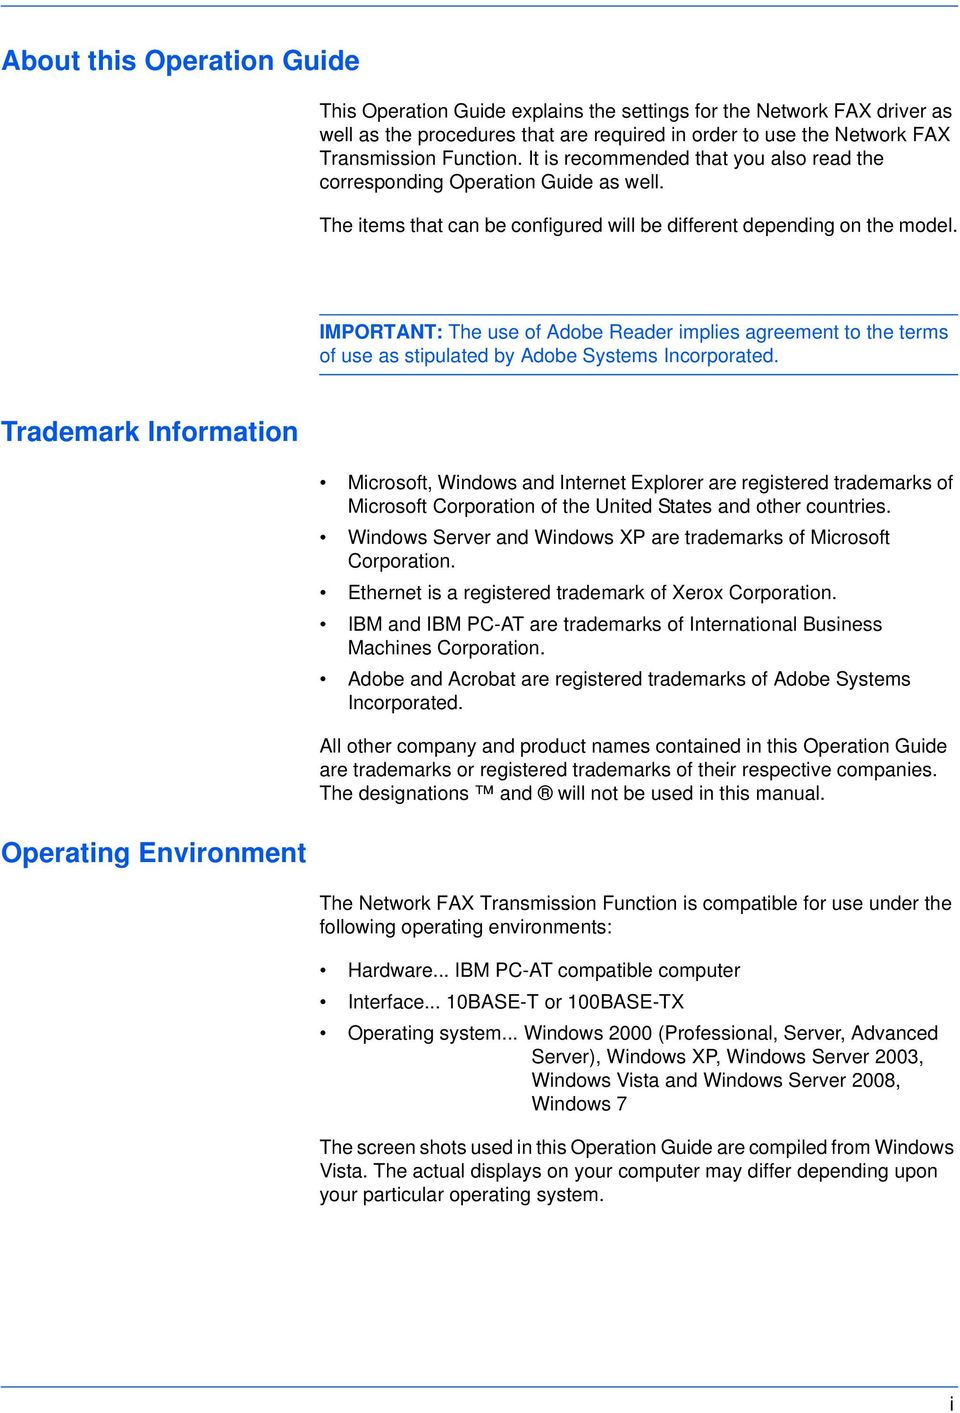 IMPORTANT: The use of Adobe Reader implies agreement to the terms of use as stipulated by Adobe Systems Incorporated.